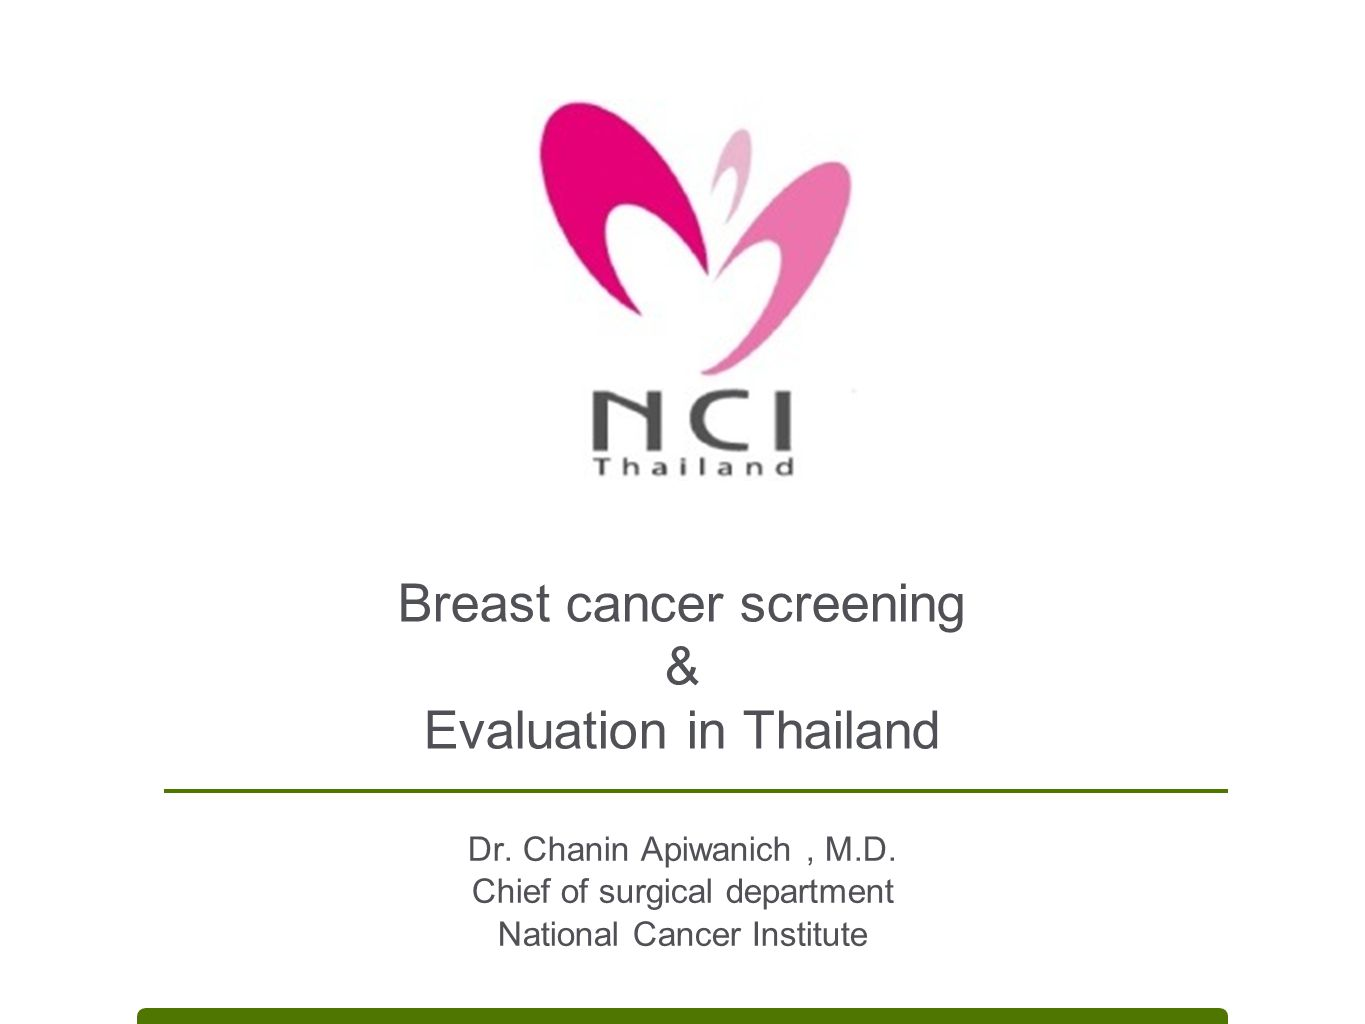 Breast cancer screening & Evaluation in Thailand Dr. Chanin Apiwanich, M.D. Chief of surgical department National Cancer Institute